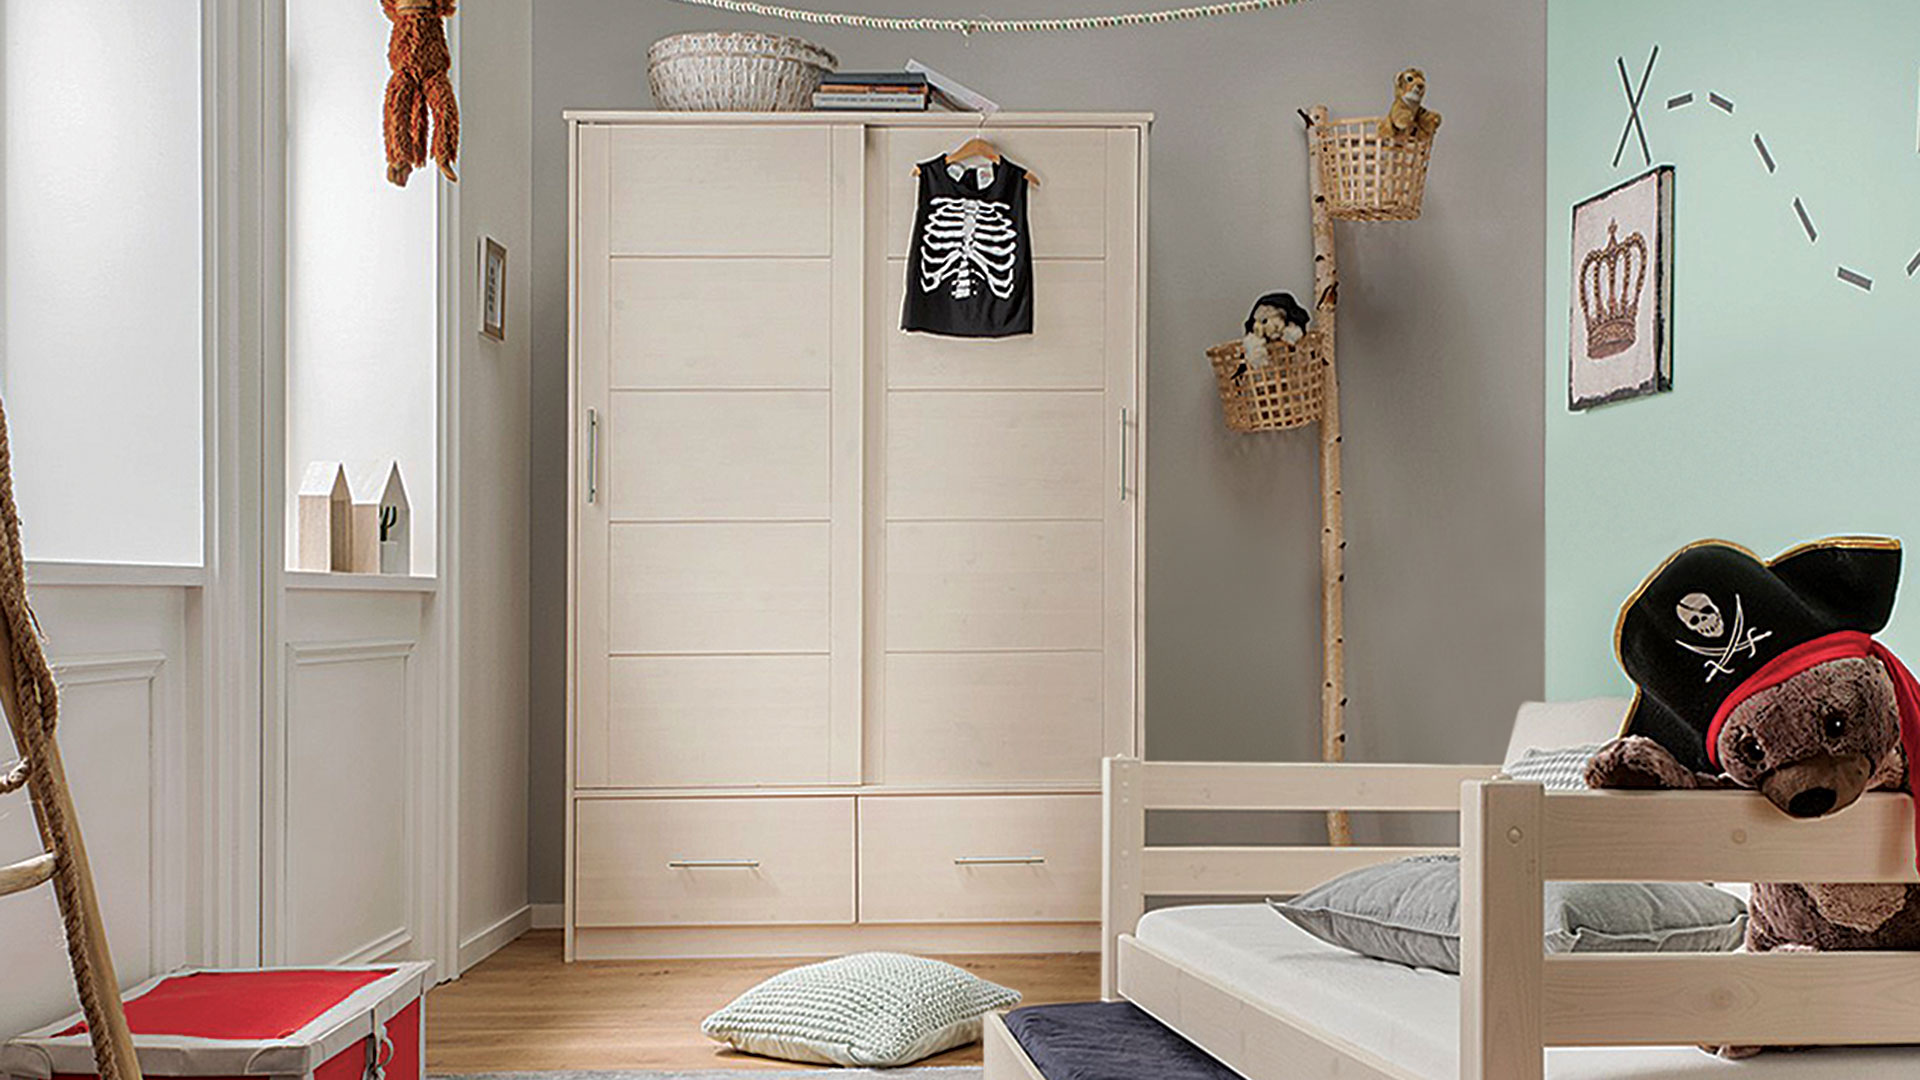 schiebet ren kleiderschrank f r baby kinder jugendzimmer. Black Bedroom Furniture Sets. Home Design Ideas